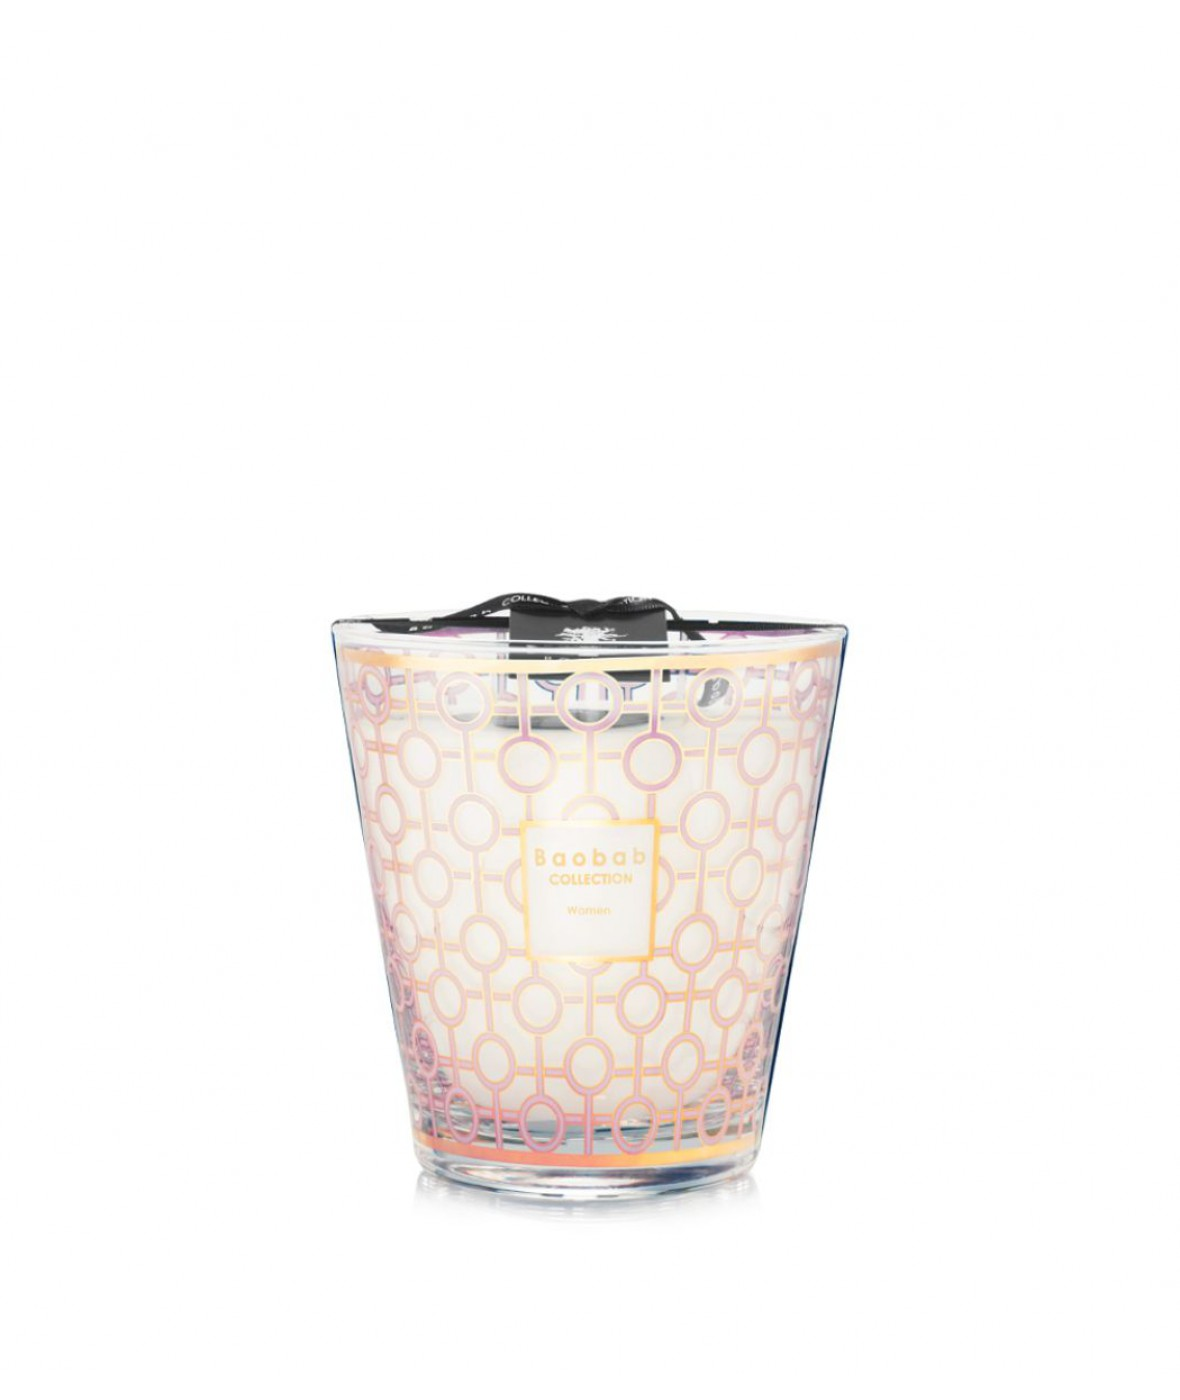 Baobap Scented Candle Women (Large)